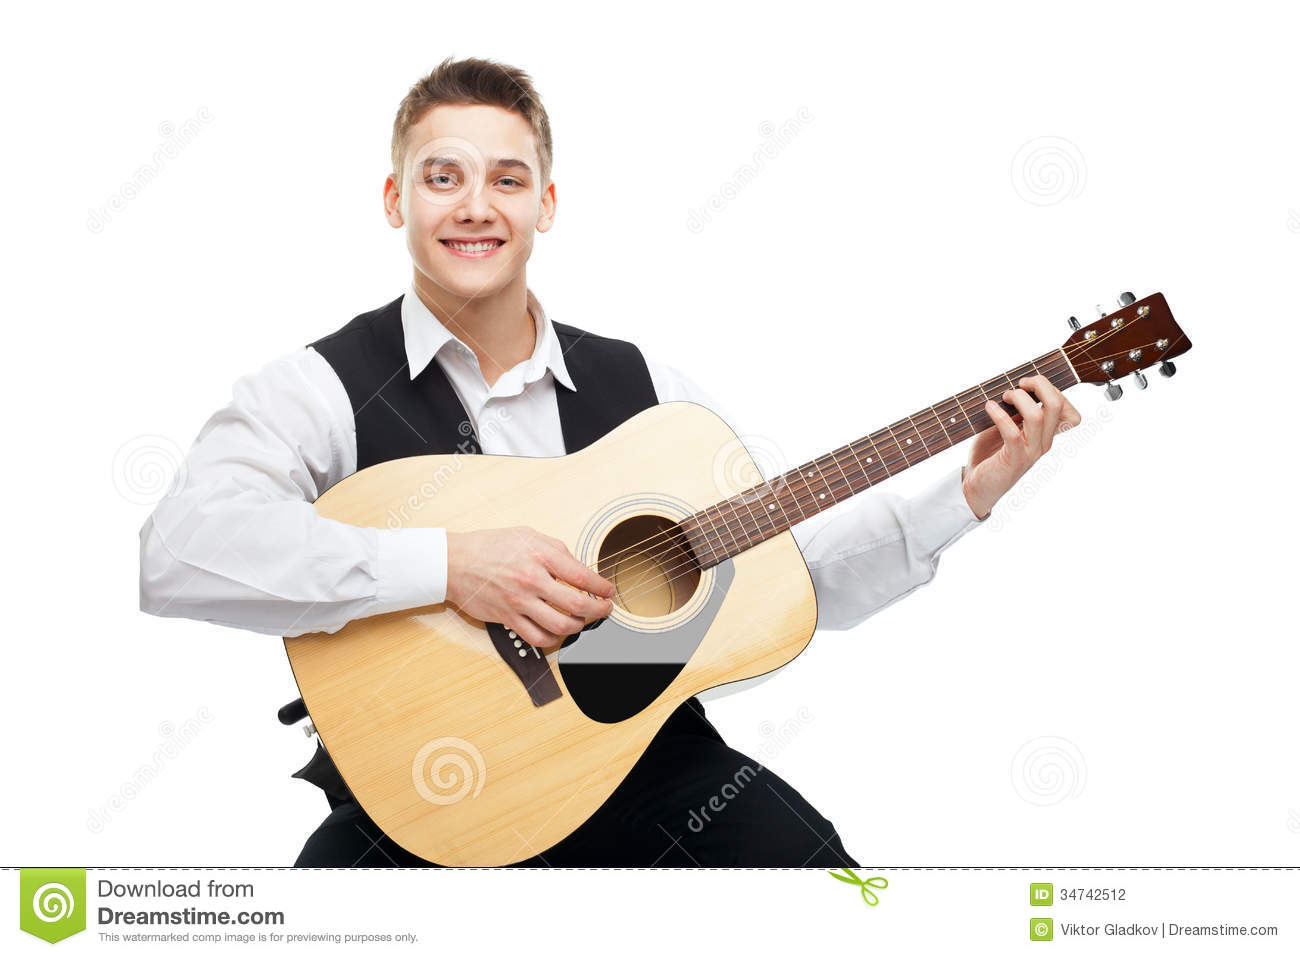 guitar playing chair wicker desk and young man on acoustic stock photography